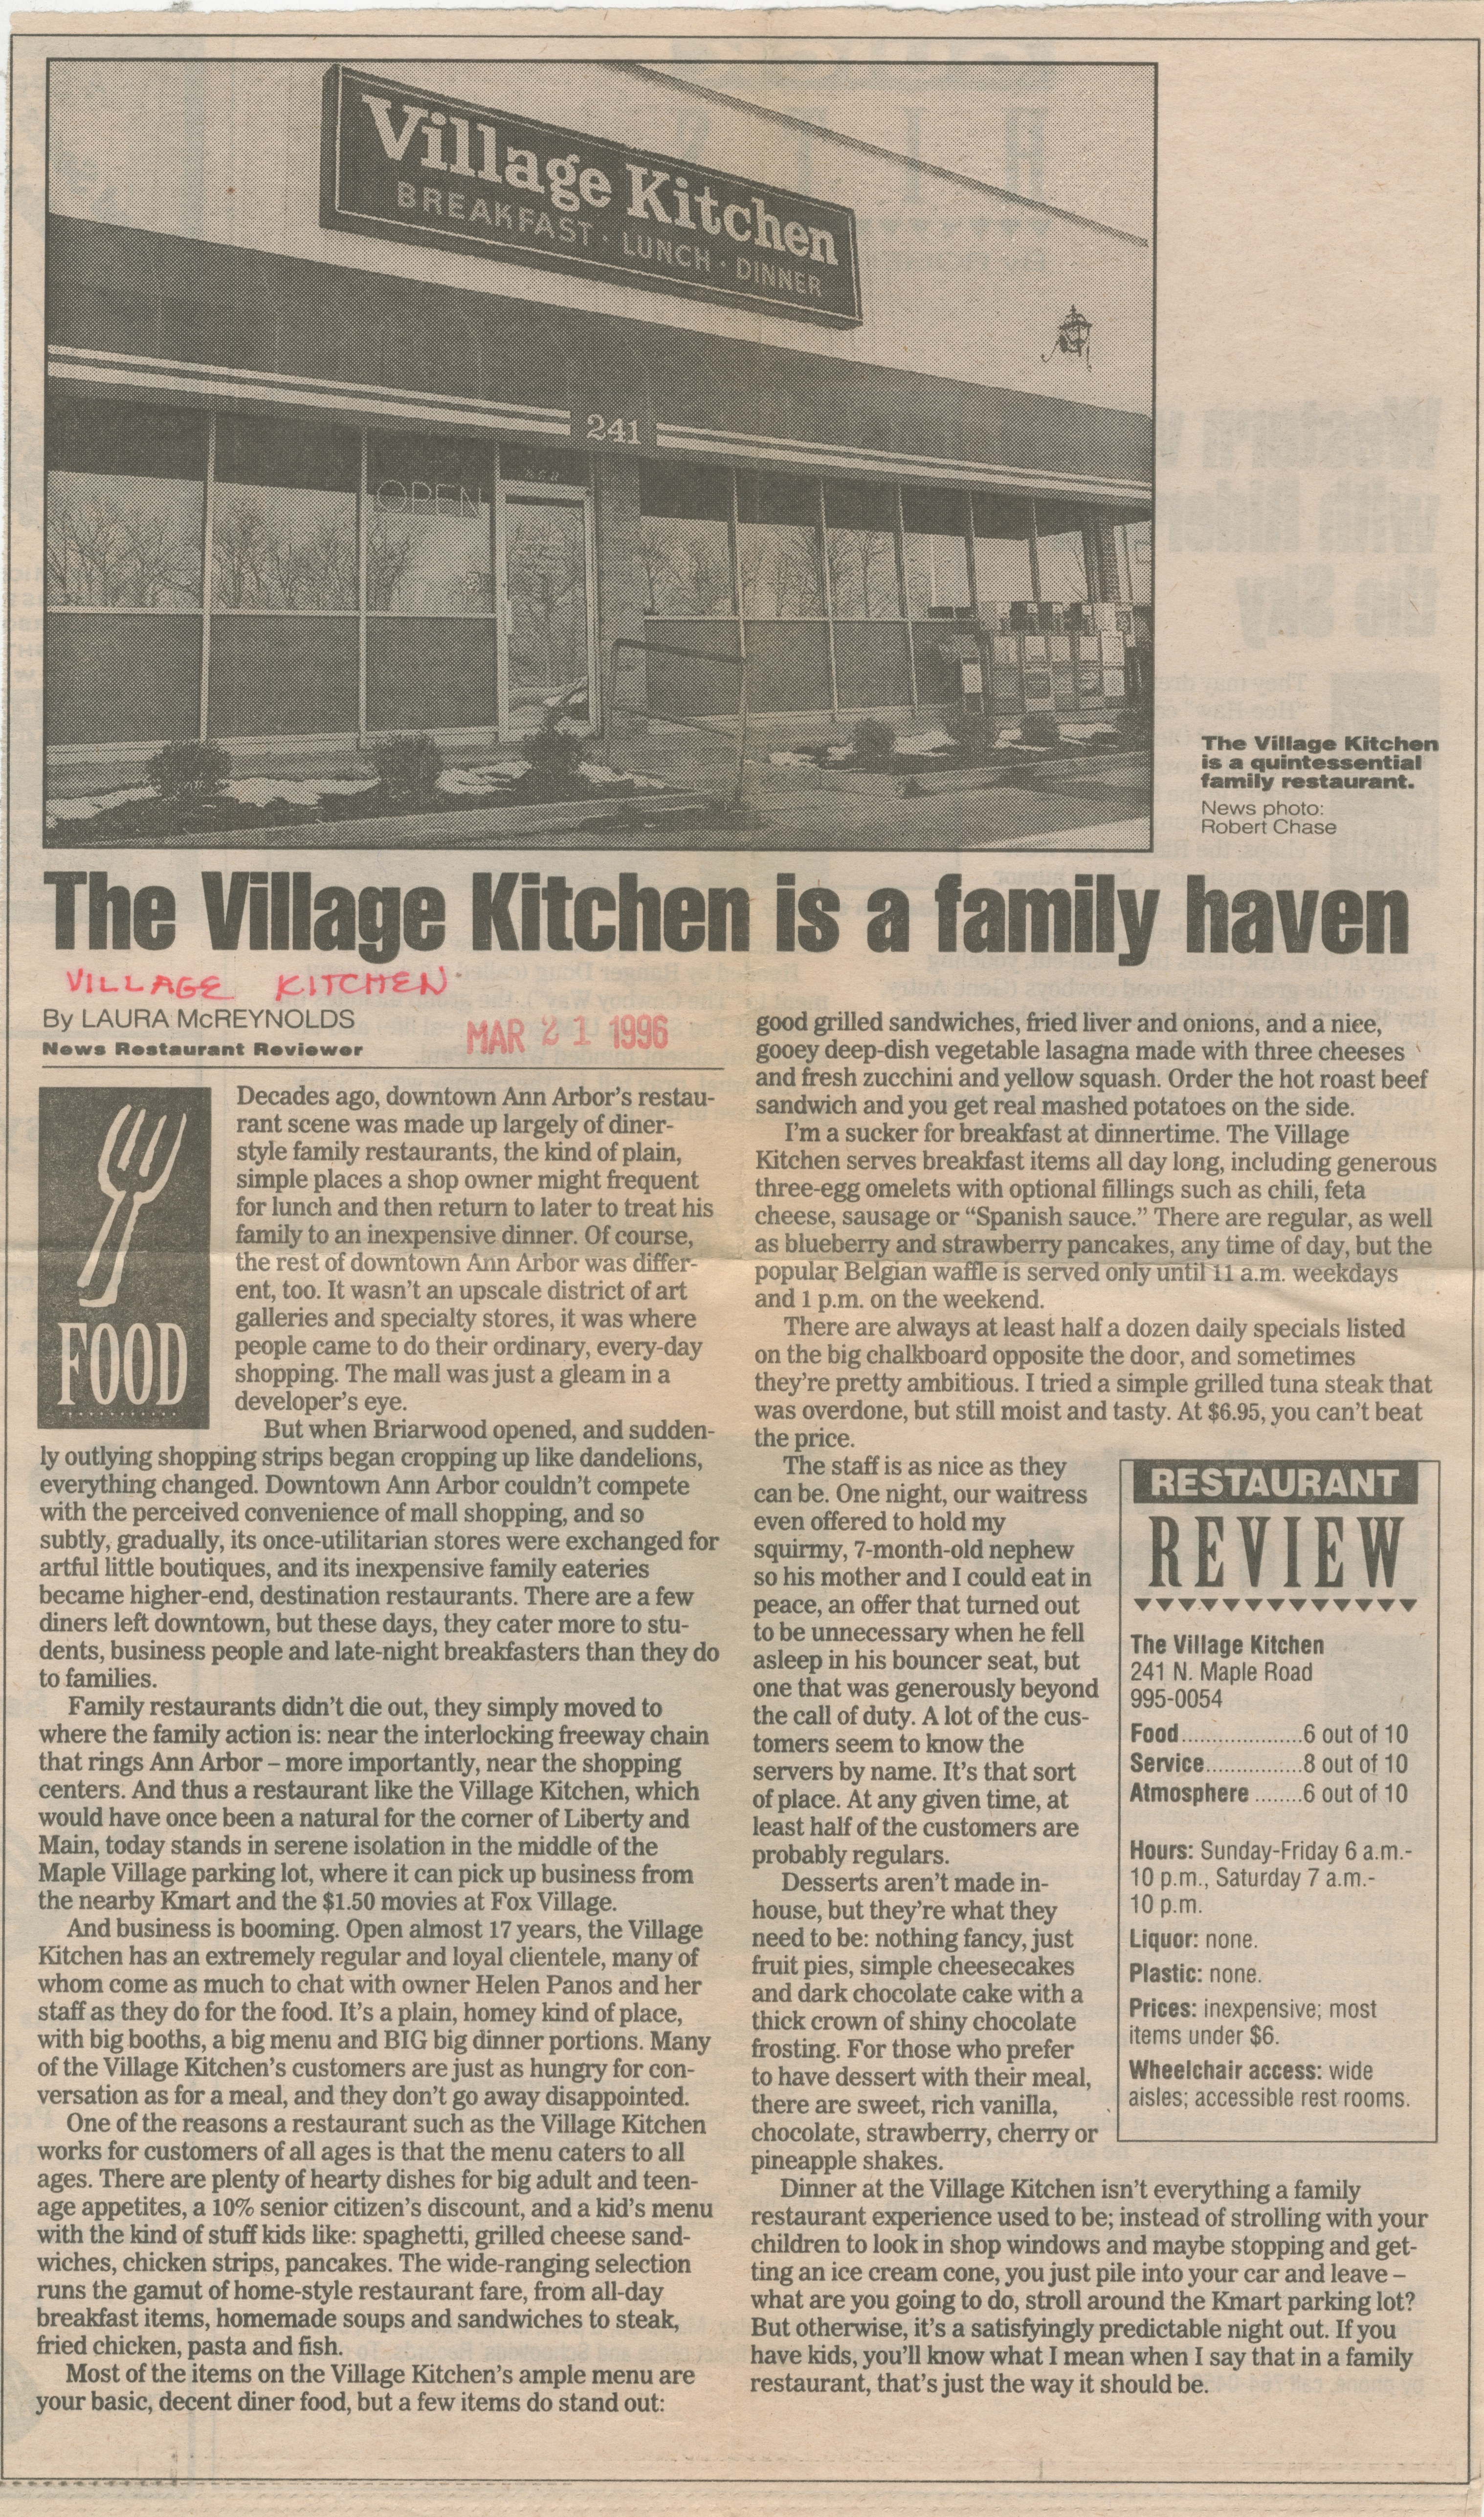 The Village Kitchen Is A Family Haven image